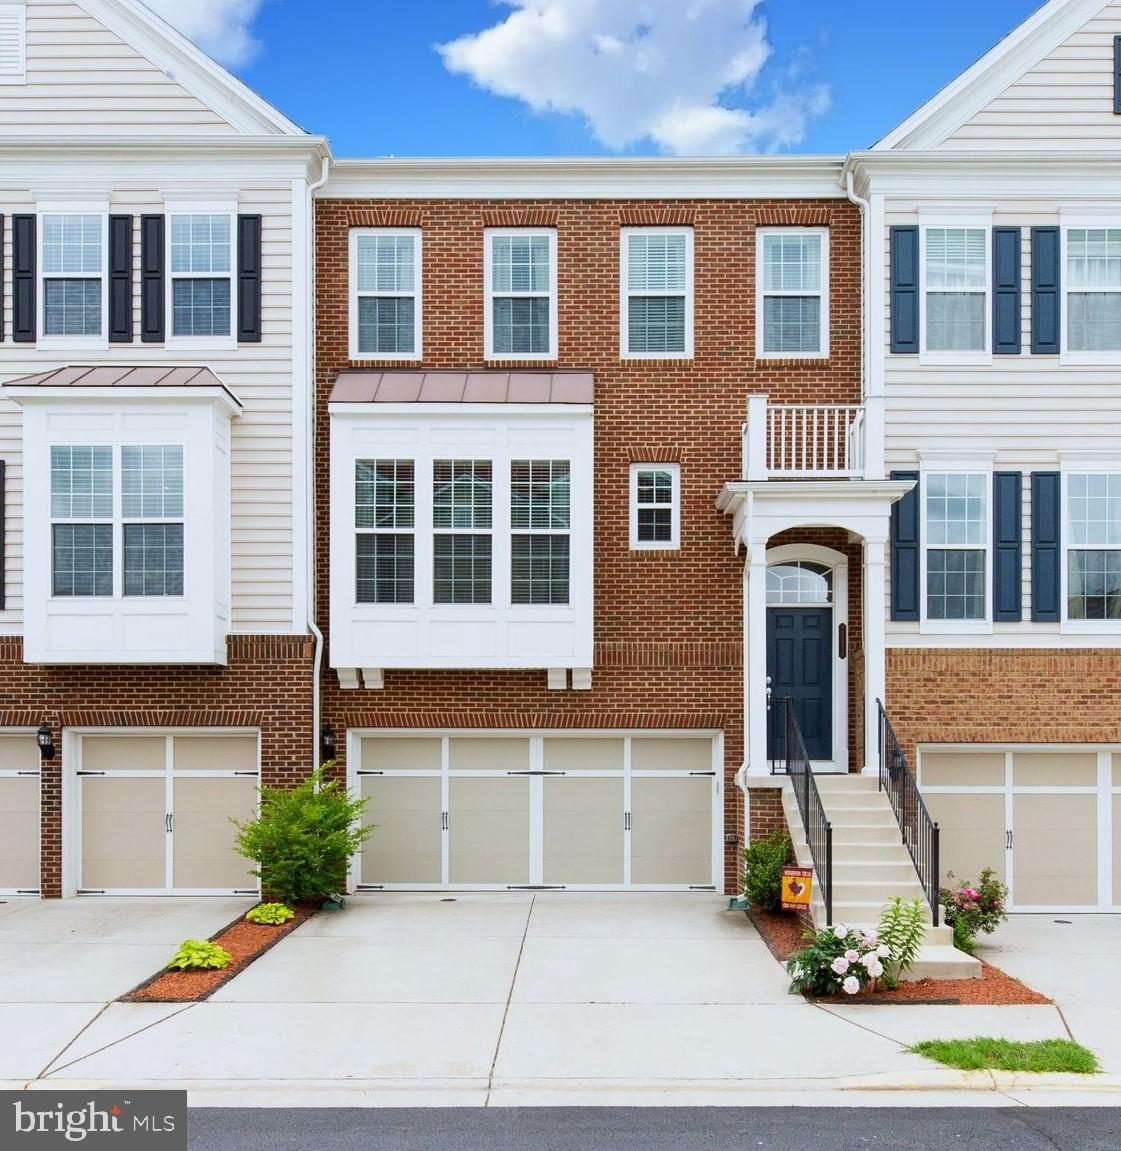 Beautiful, bright, and spacious 3 level townhome, on premium lot in wonderful Townes at East Gate co